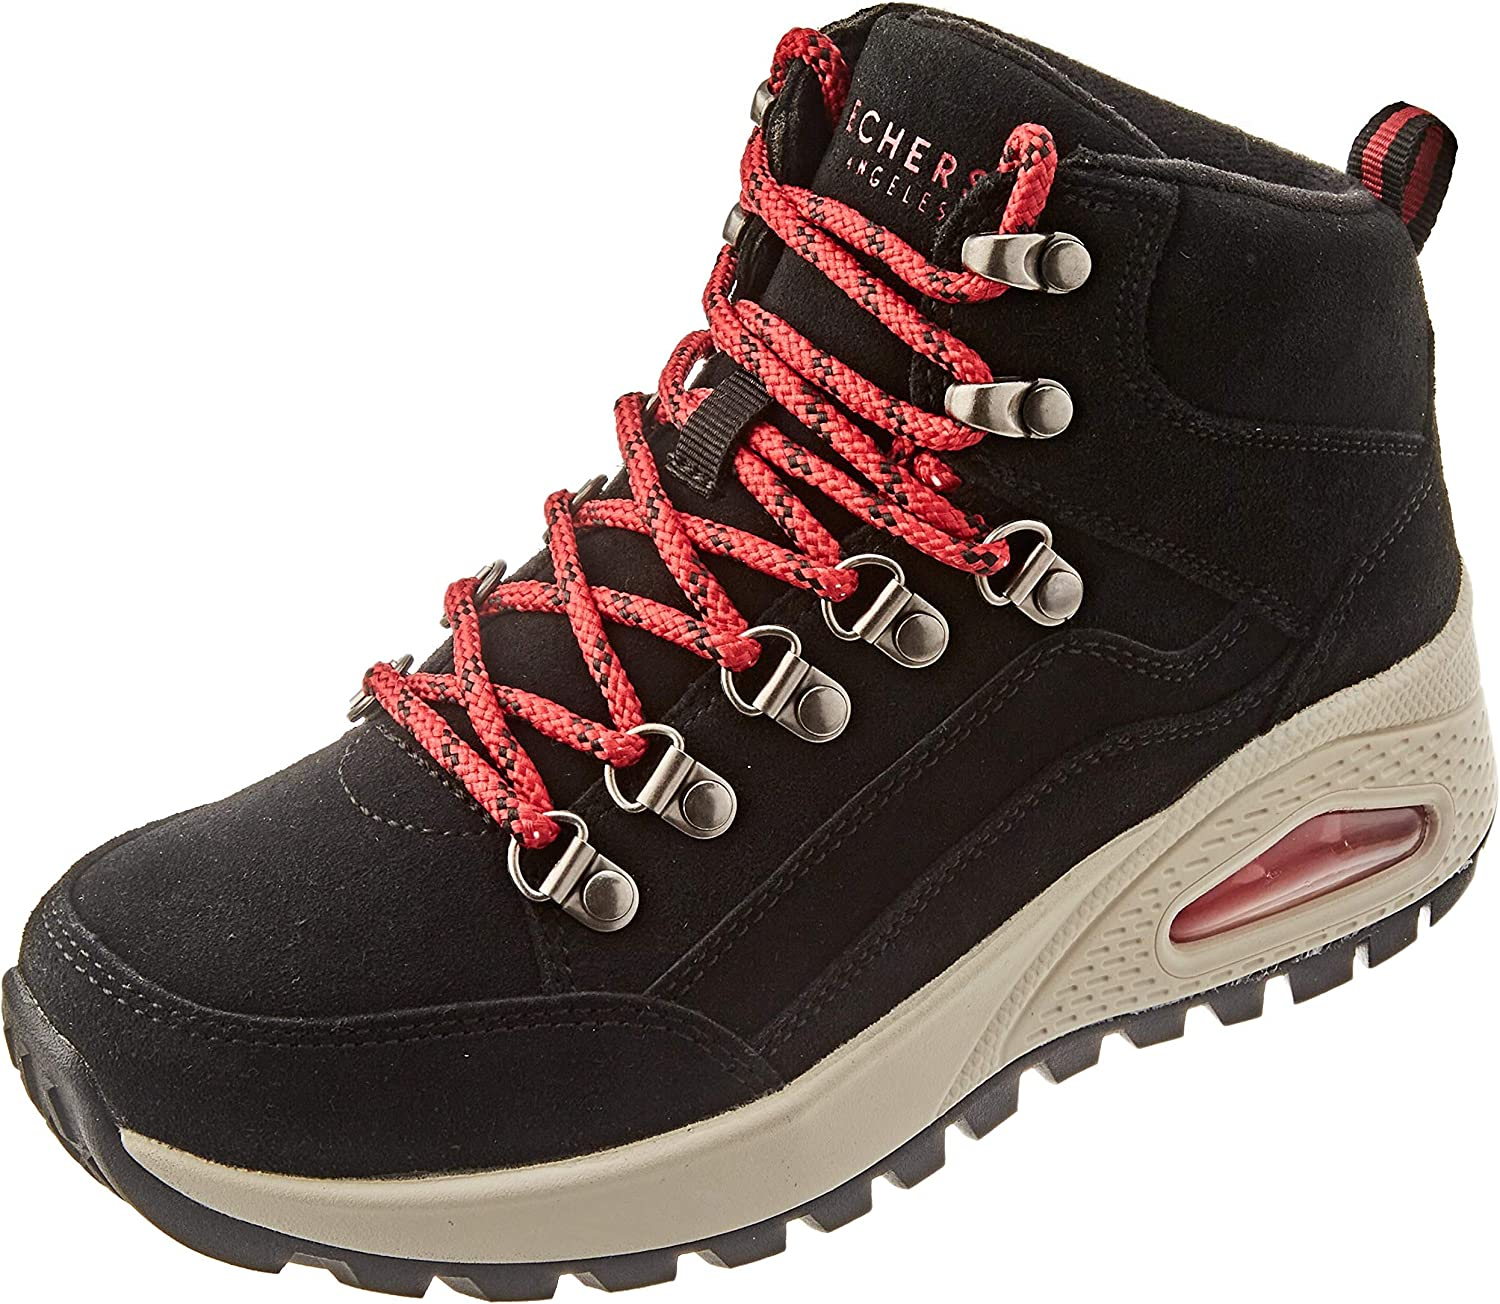 Skechers Excellence Max 45% OFF Women's Uno Rugged Fashion One Boot